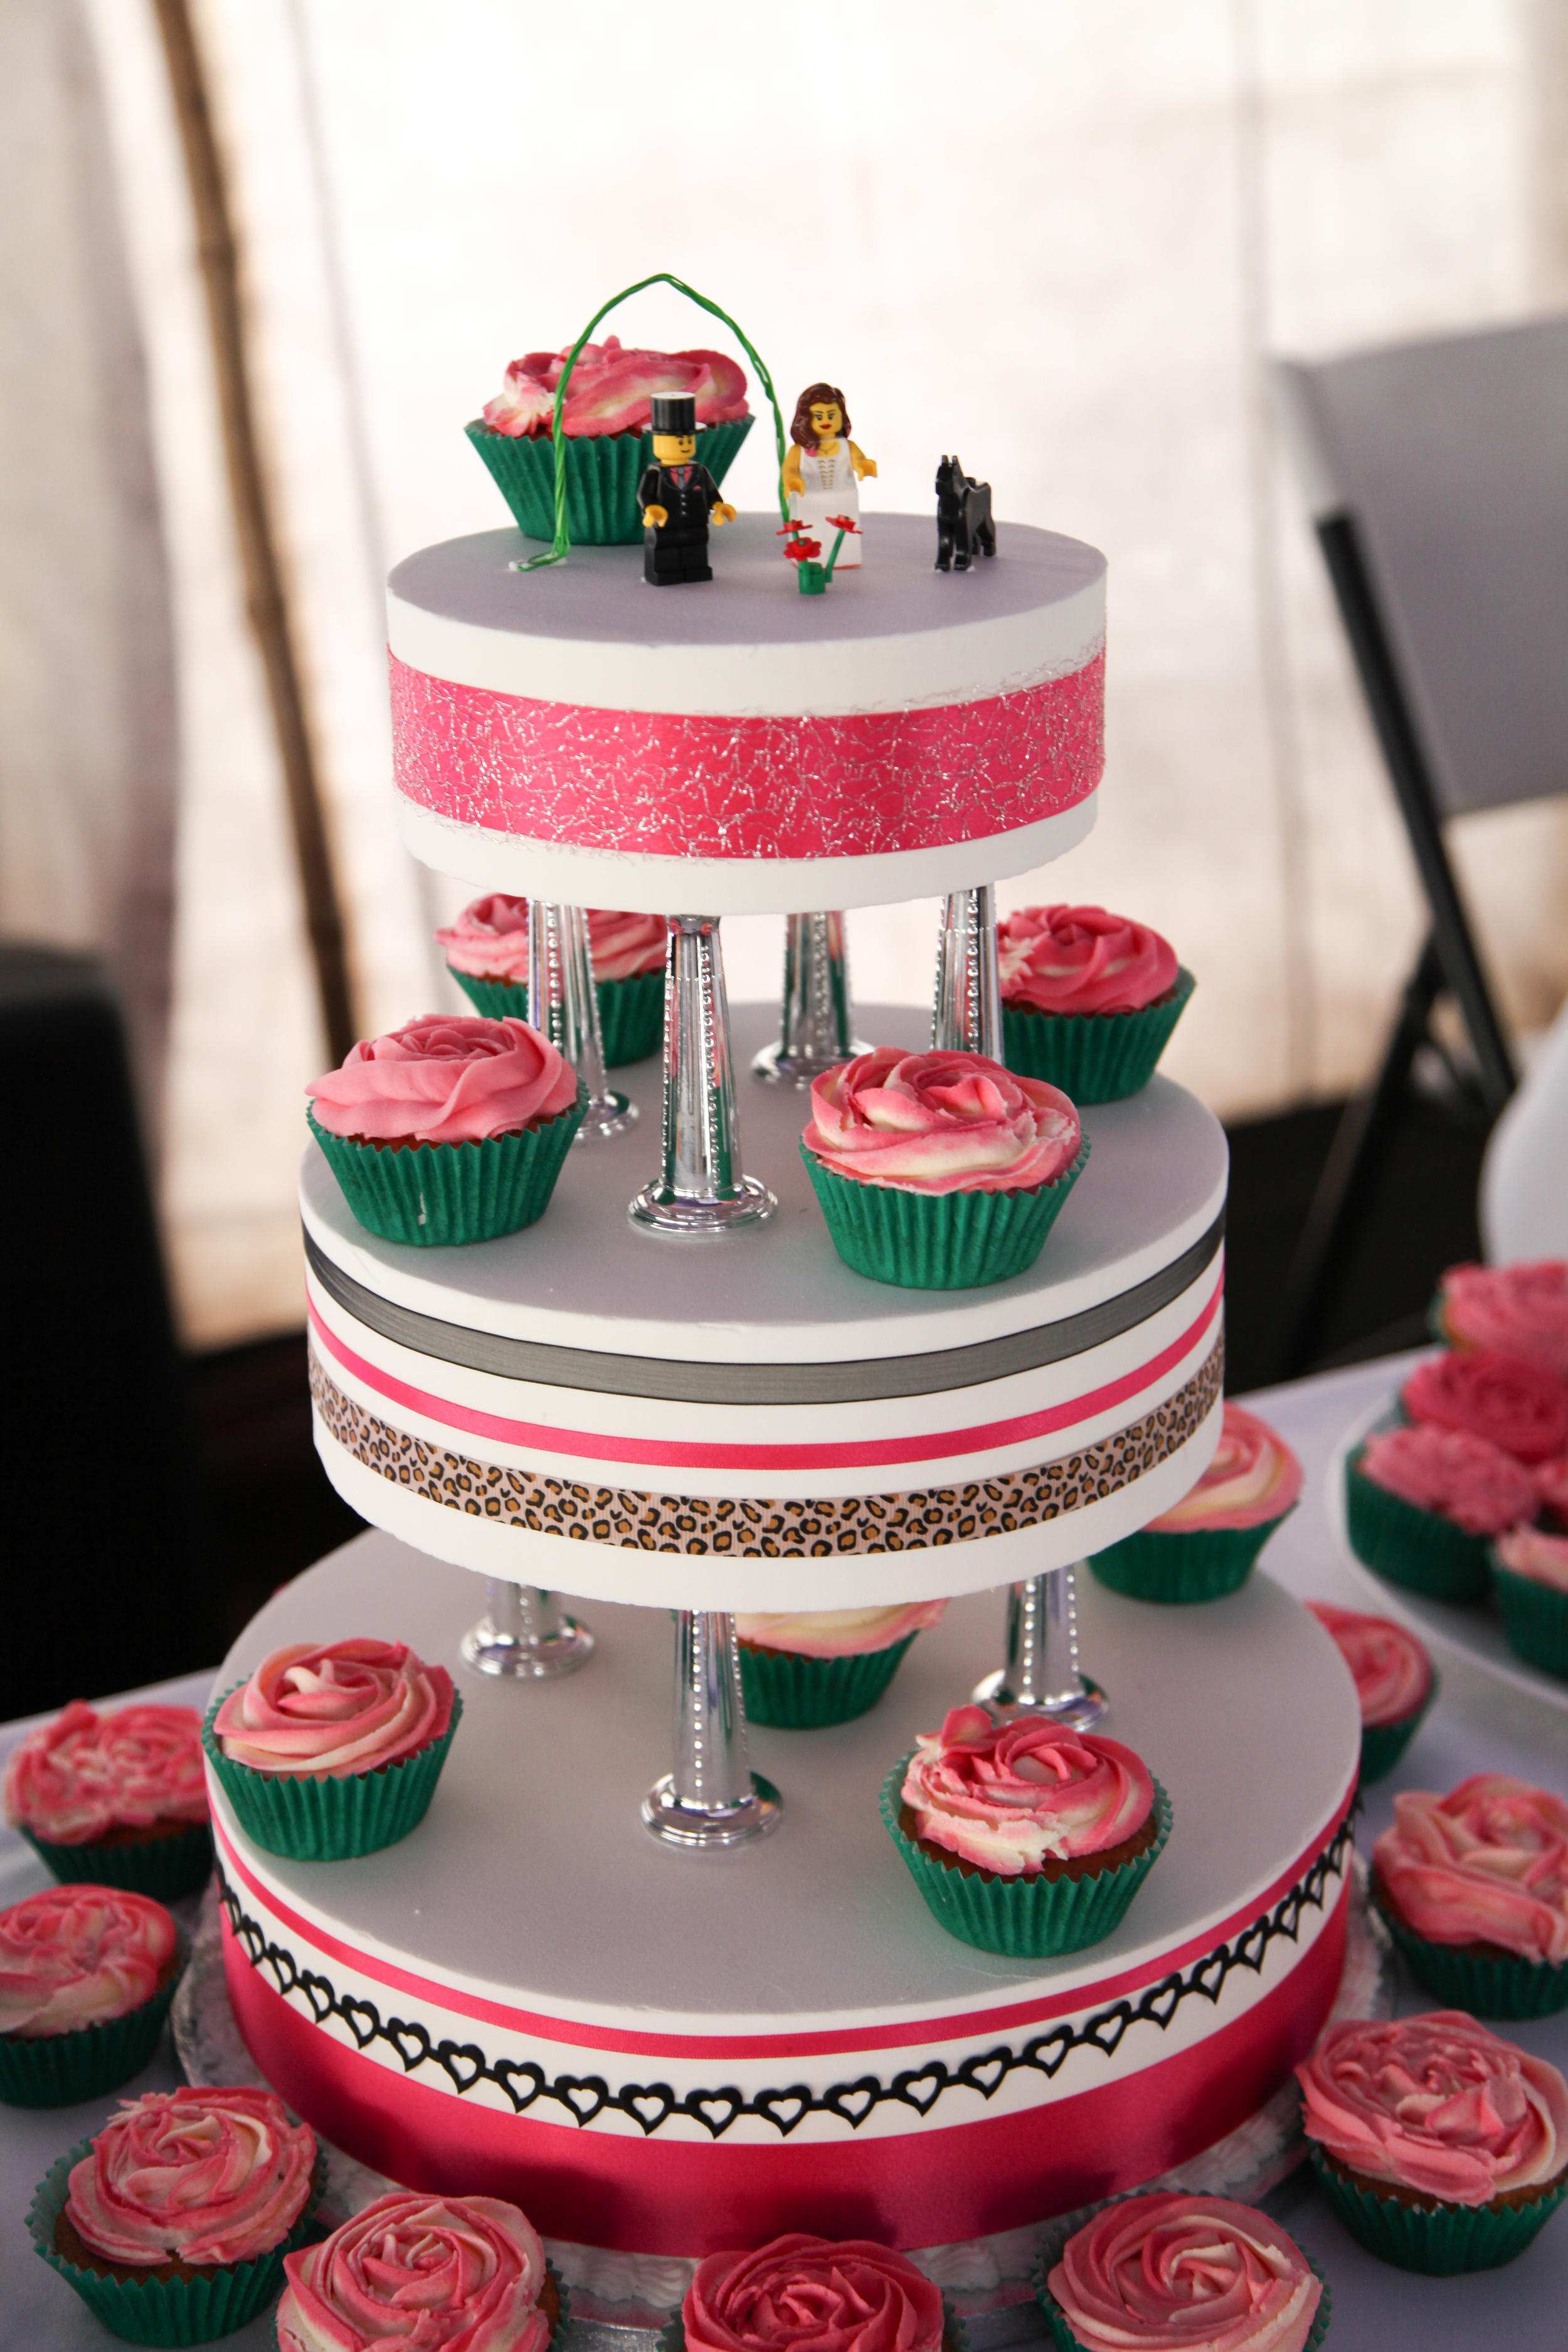 Homemade wedding cake - yes, they are Lego cake toppers...